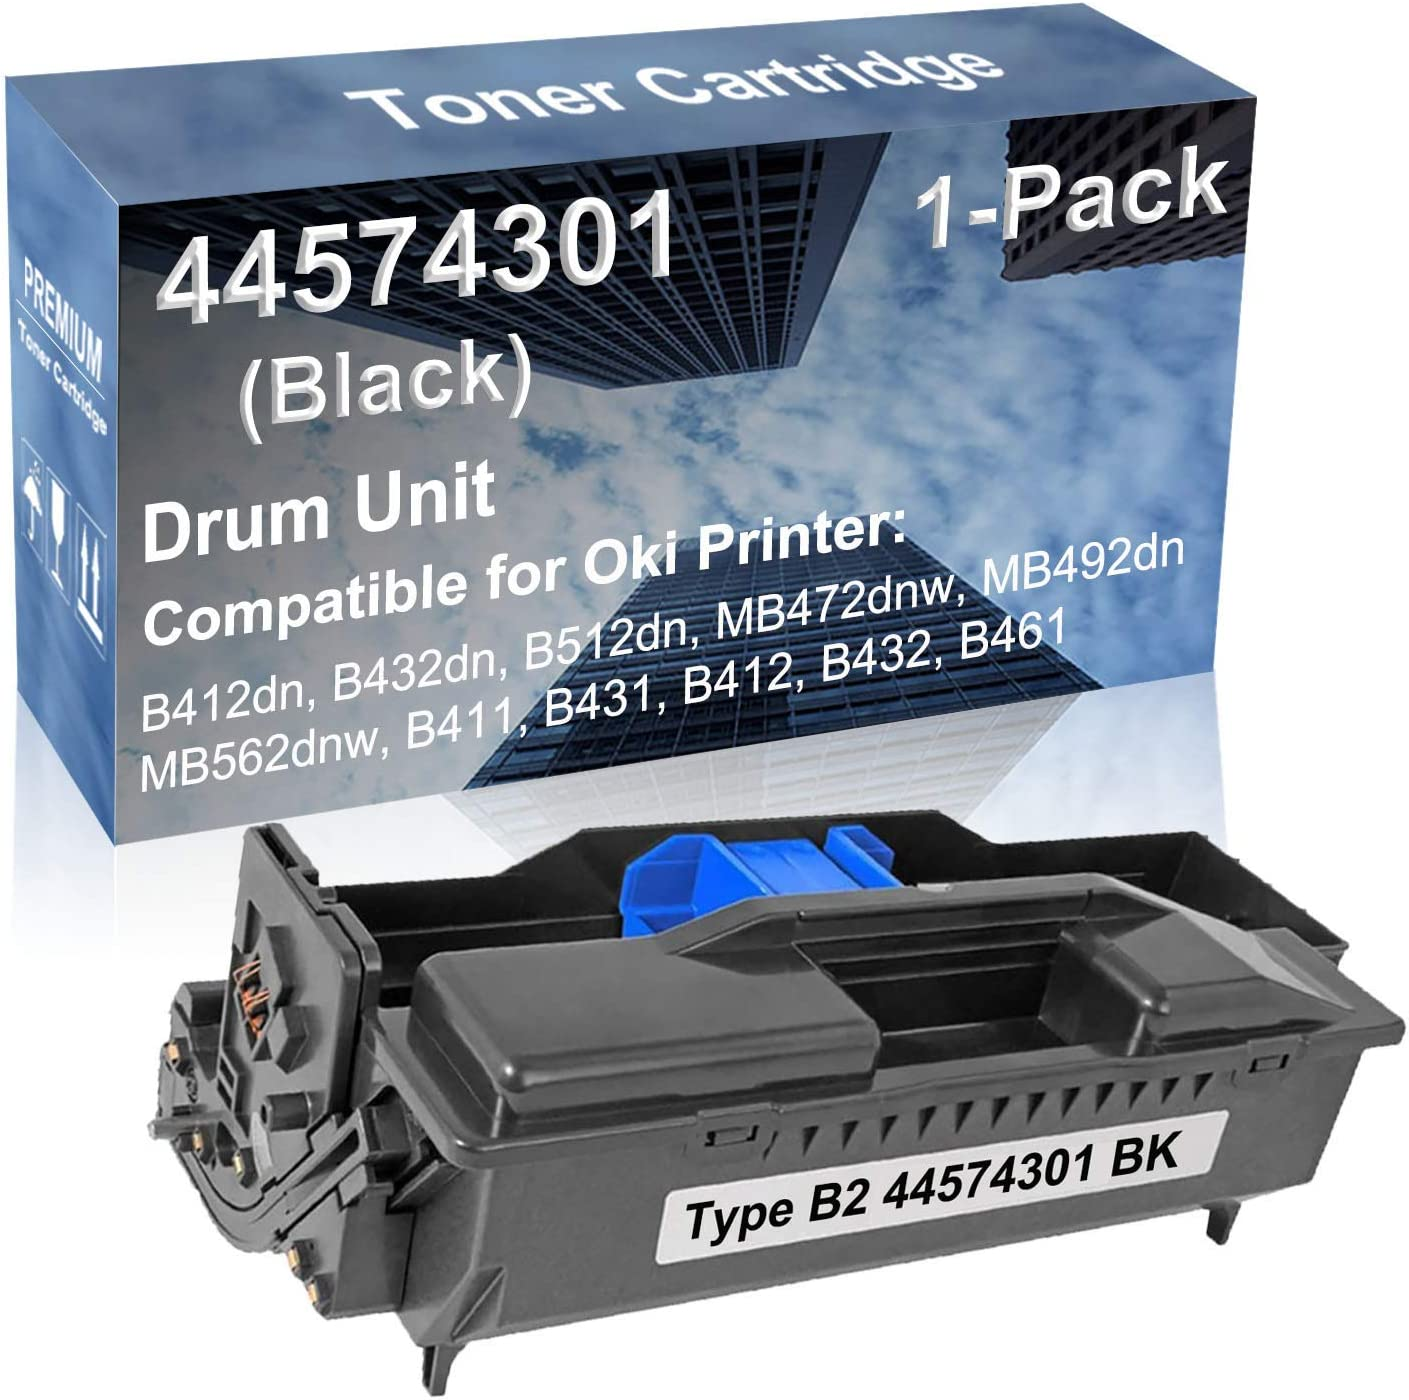 1-Pack Compatible Drum Unit (Black) Replacement for Oki Type B2 44574301 Drum Kit use for Oki B412, B432, B461 Printer